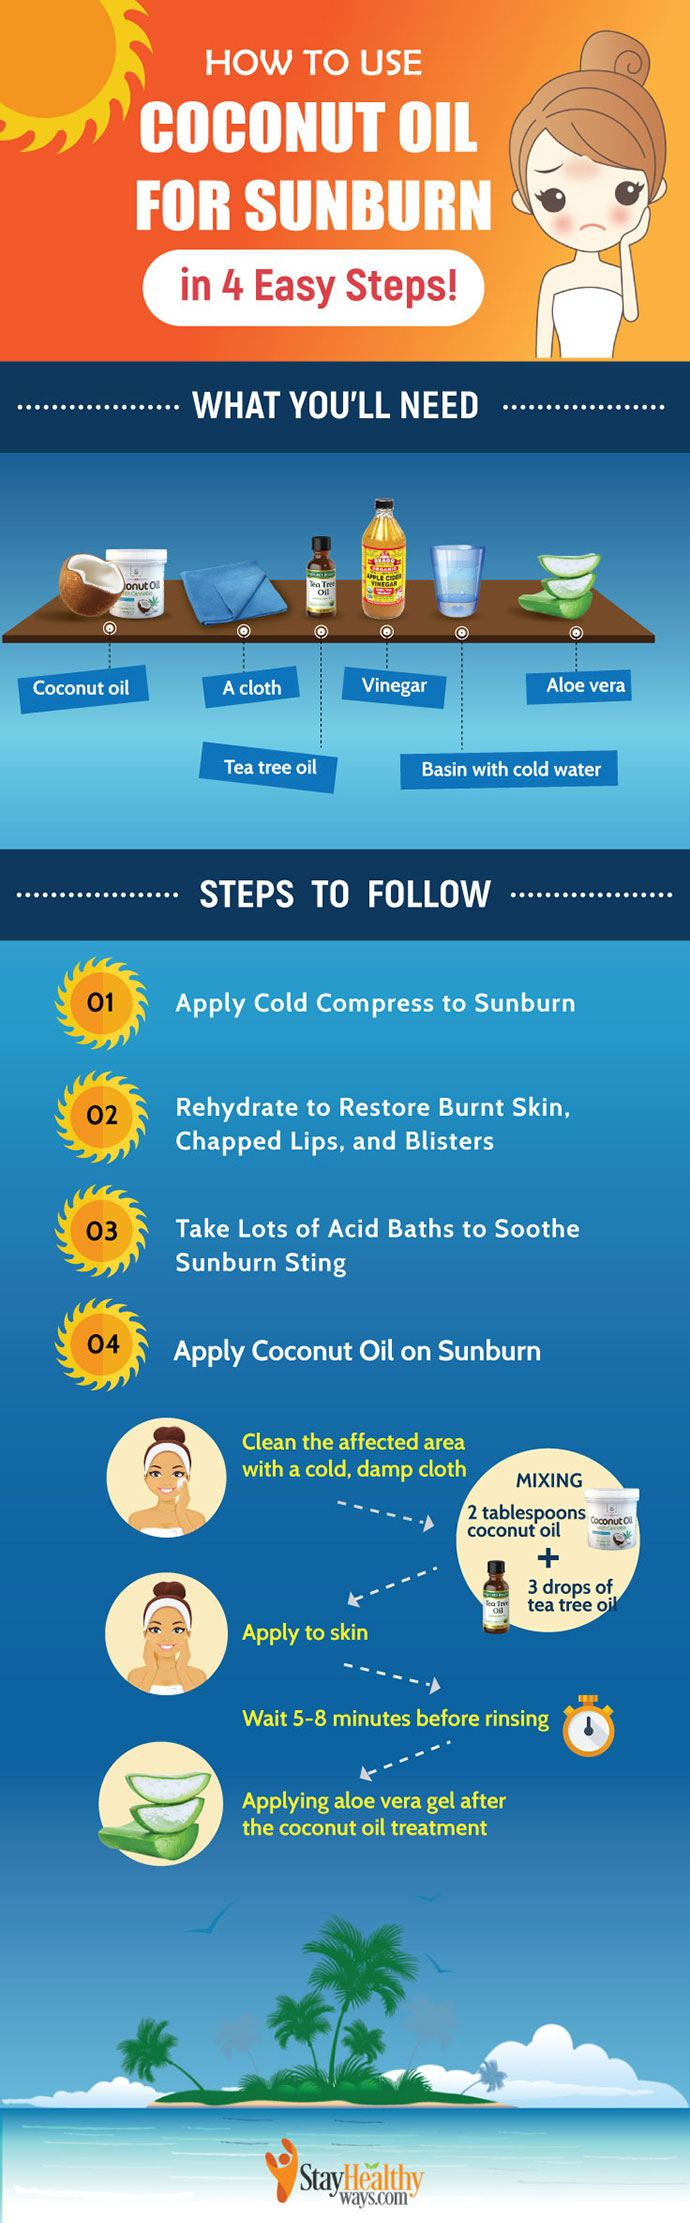 coconut oil for sunburn DIY